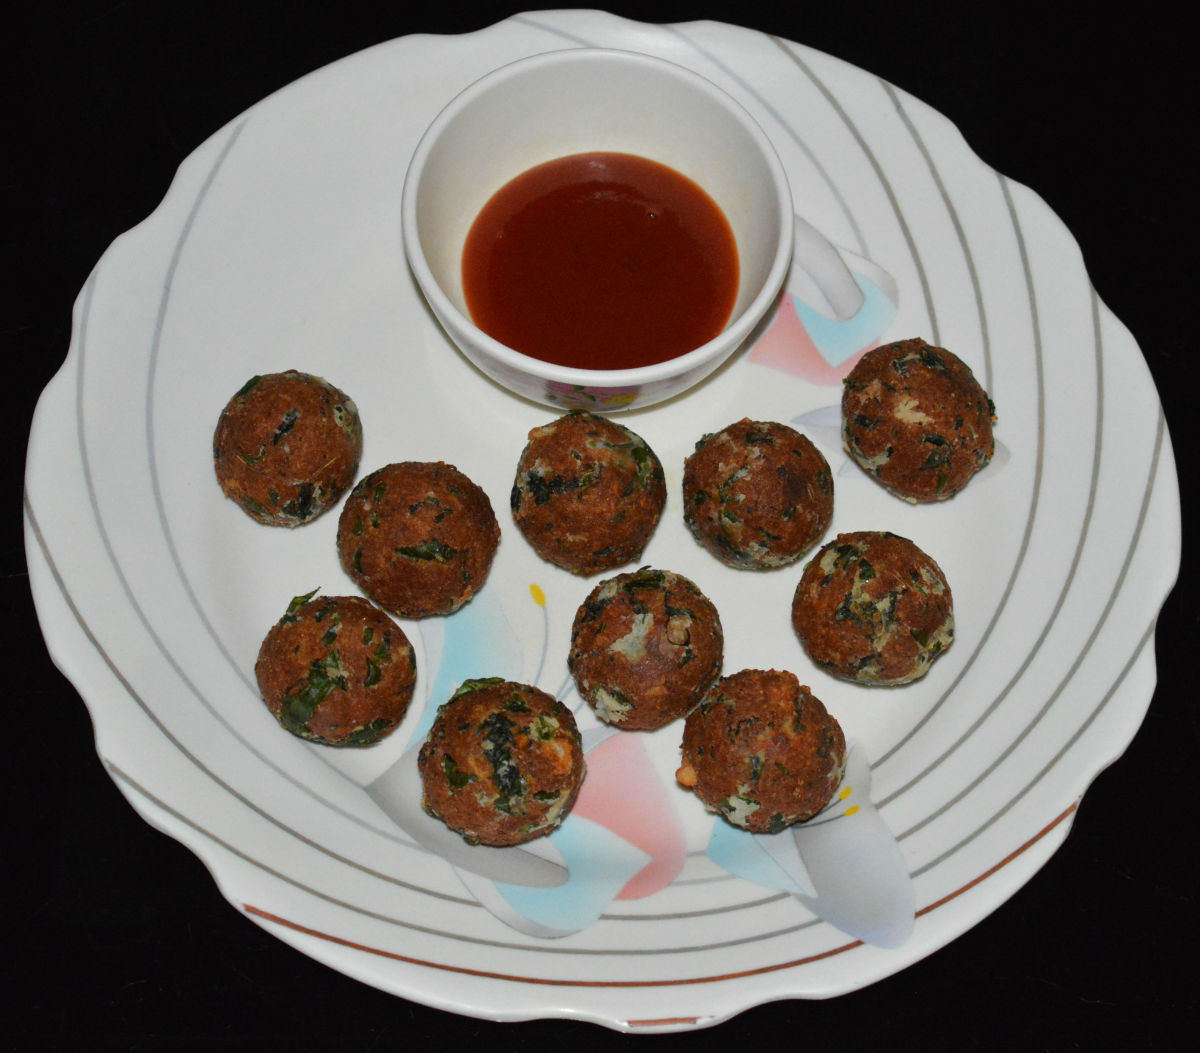 Mouthwatering spinach, paneer, and cheese balls are ready to serve! Eat them with tomato sauce on the side.